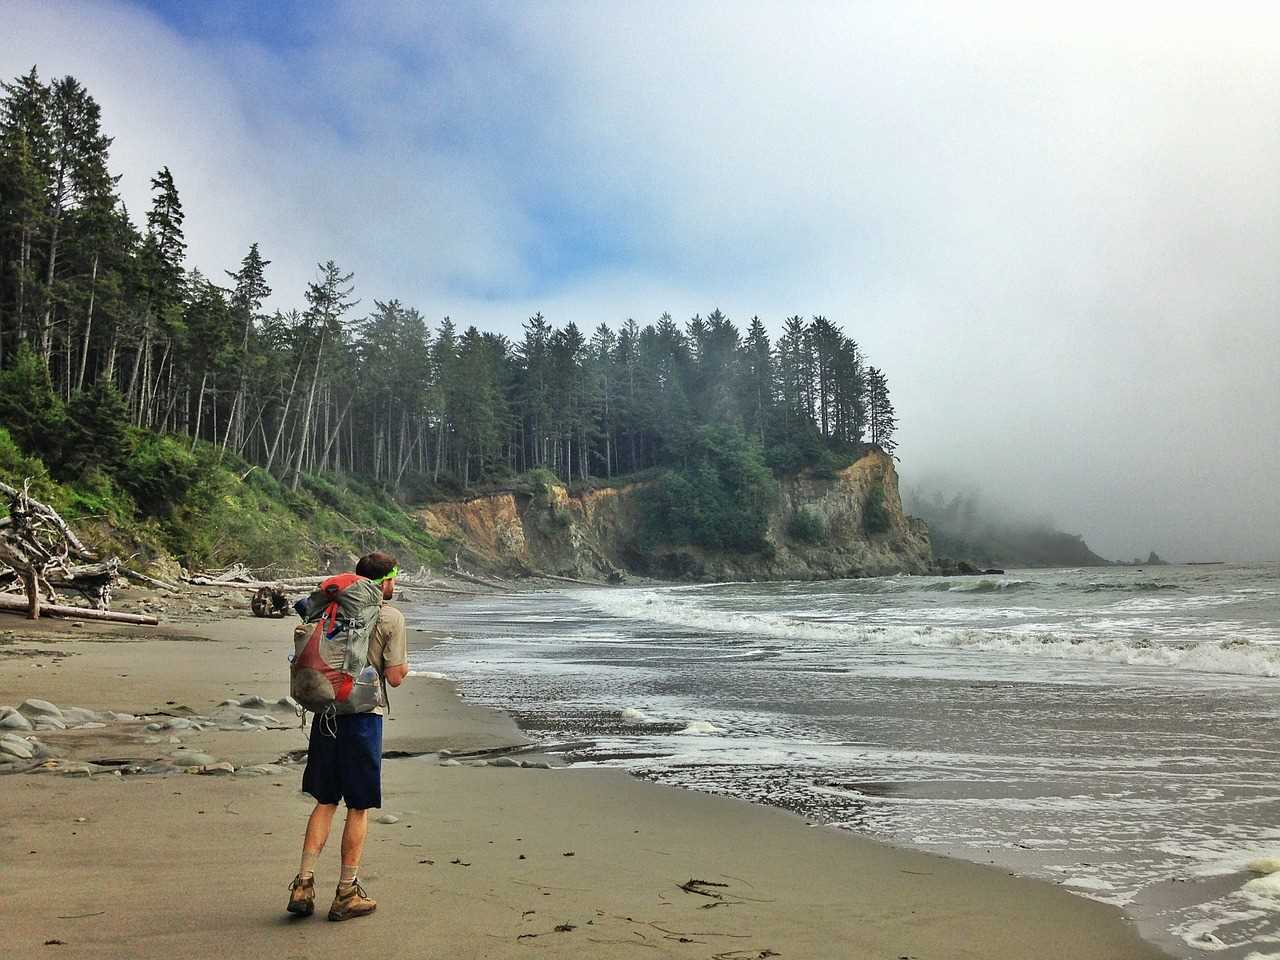 The best place to stay in Olympic National Park!